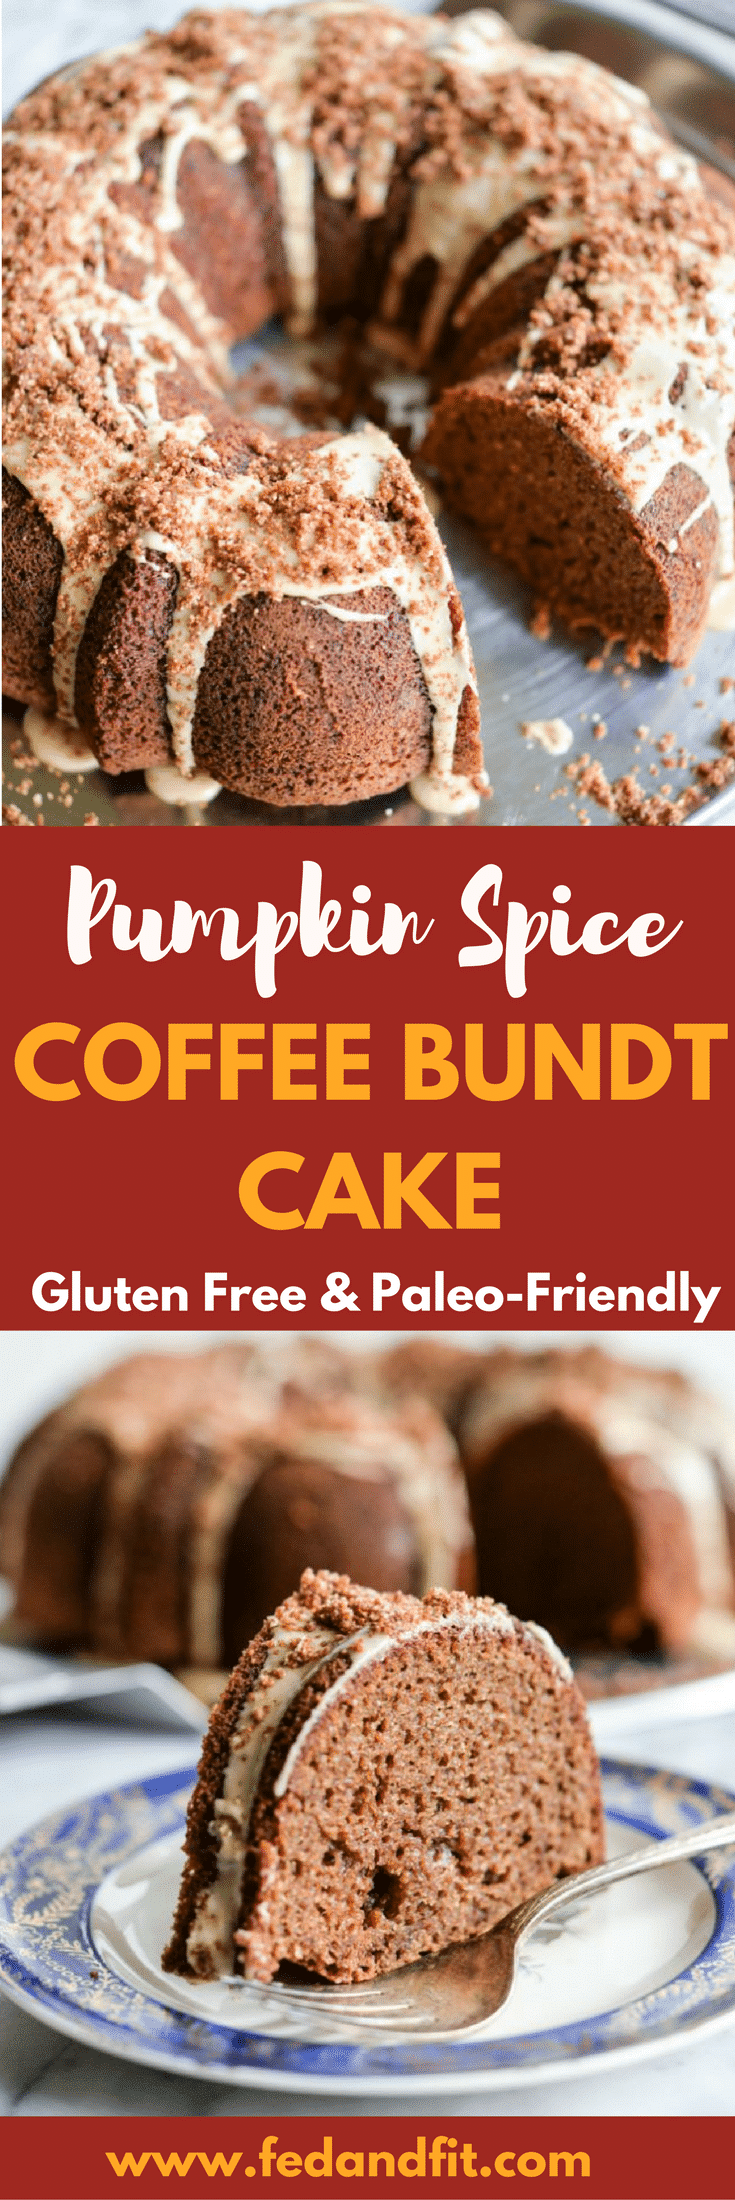 This Pumpkin Spice Coffee Bundt Cake with a Cold Brew Frosting is gluten free, Paleo-friendly, and the perfect treat for brunch or even Christmas morning! | Fed & Fit